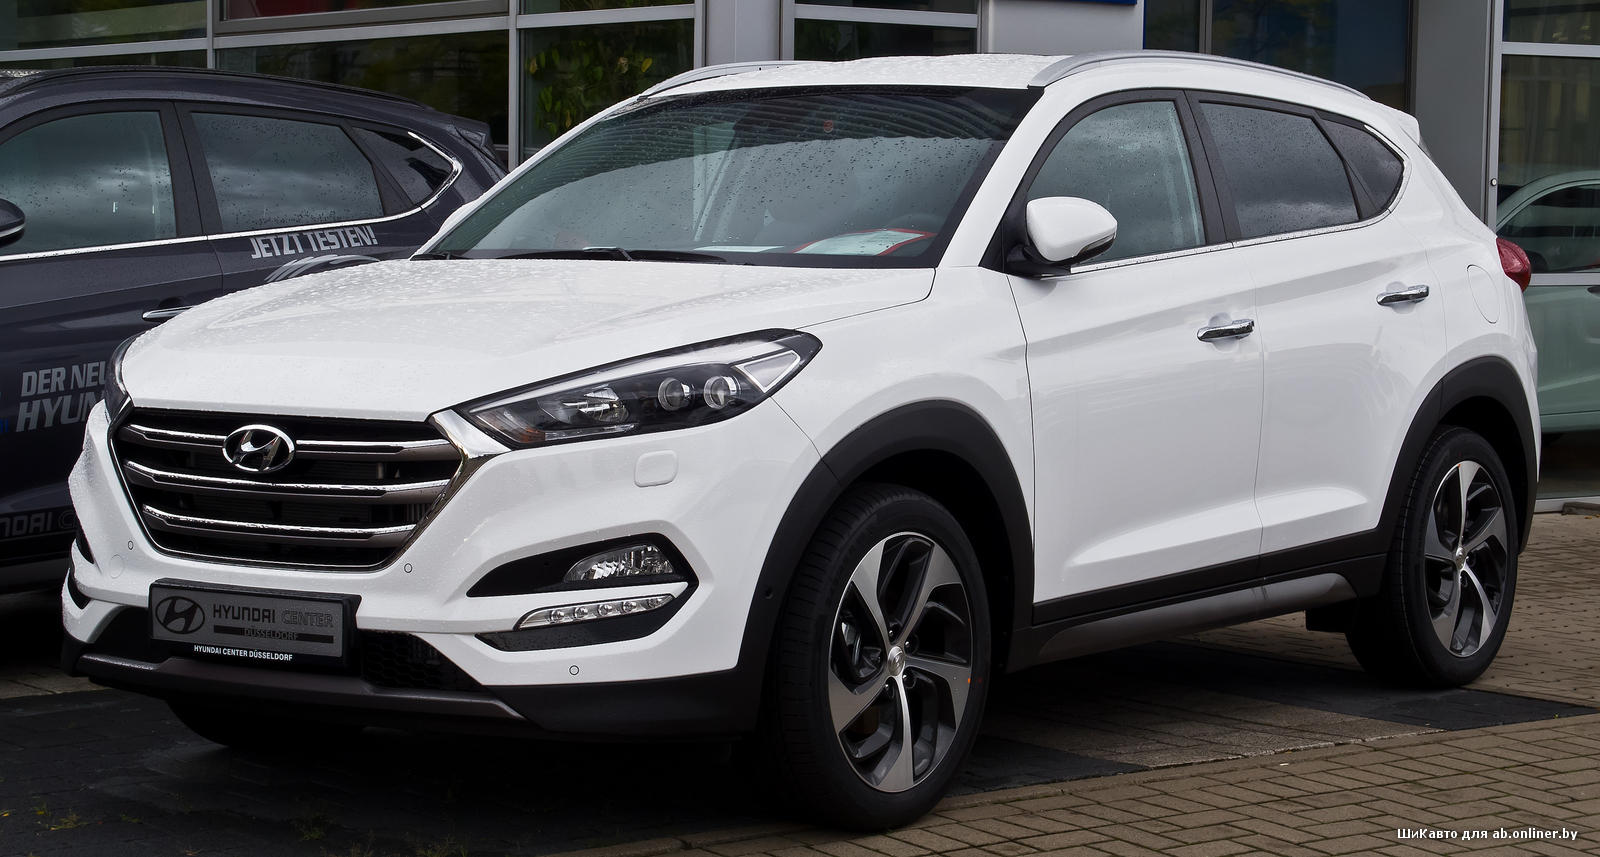 Hyundai Tucson 2.0 CRDI 6AT AWD